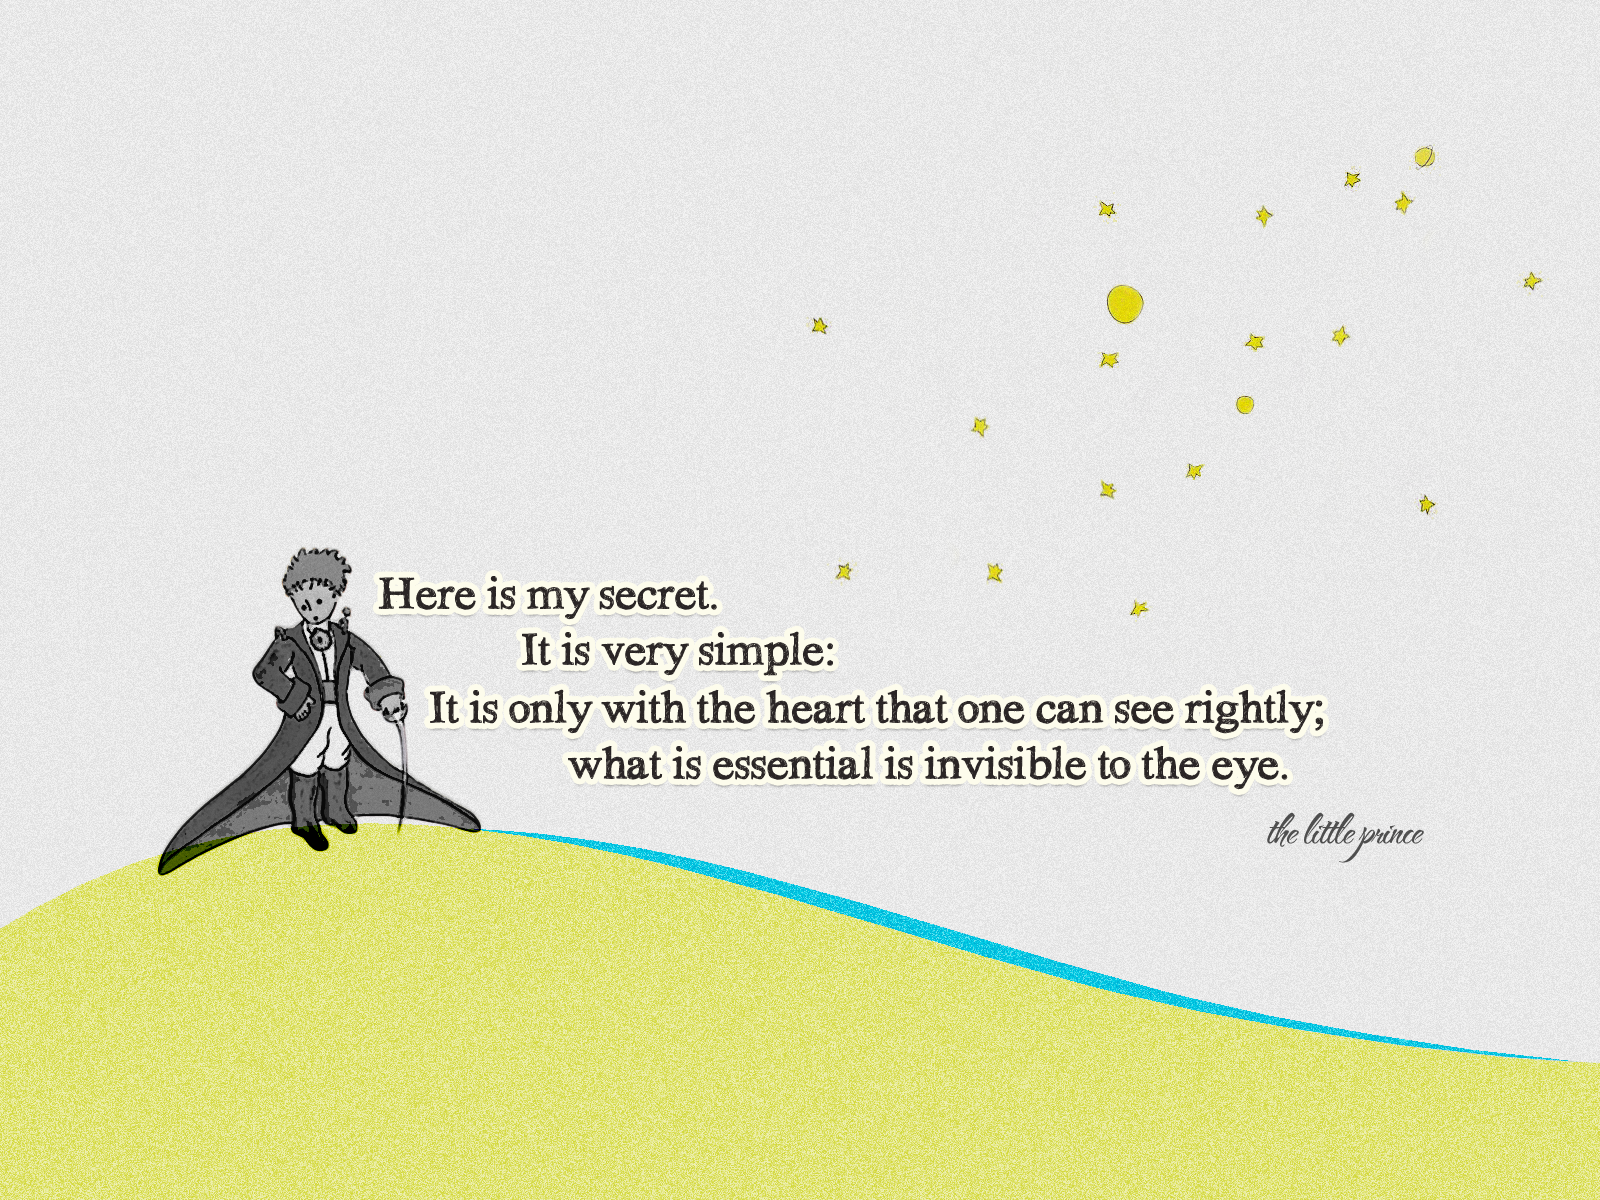 the_little_prince_quote_by_geekyspaz-d314eqb